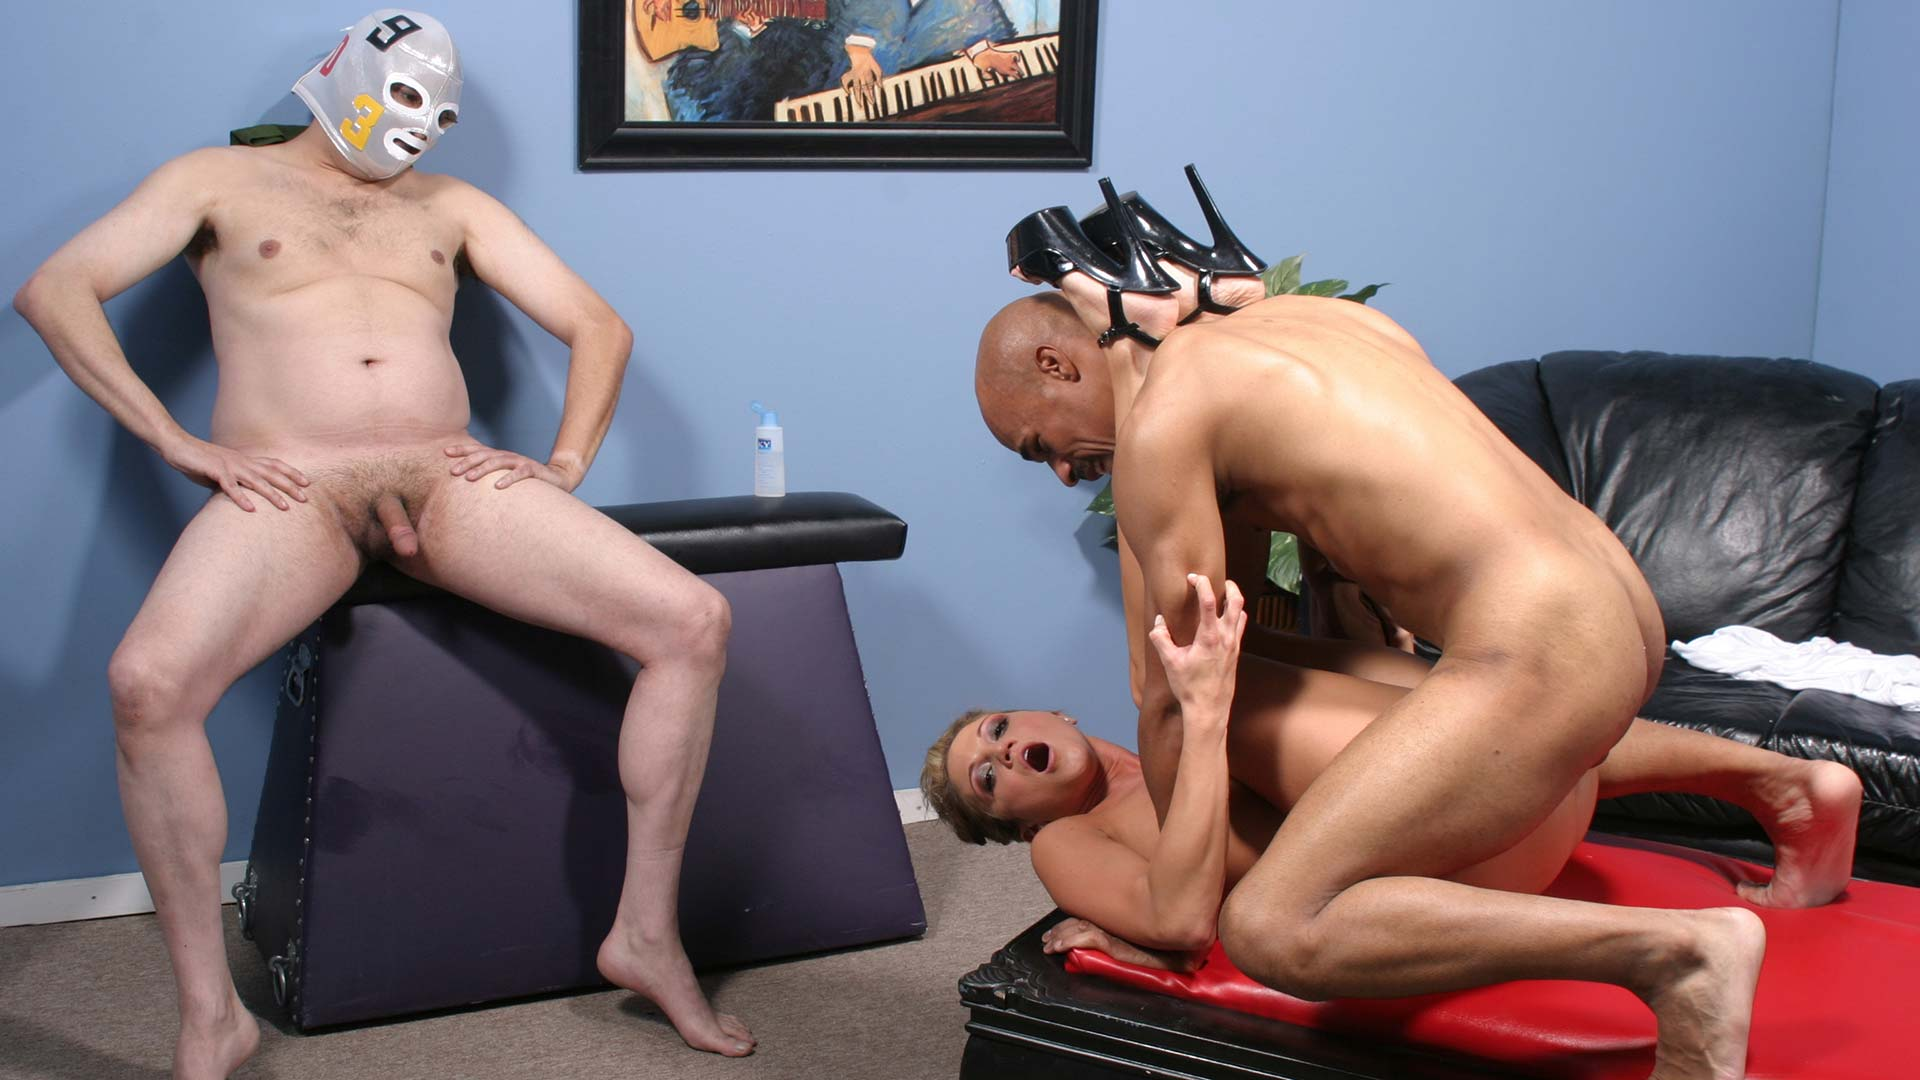 SpringThomas  Revenge of the Cuckold Interracial Porn